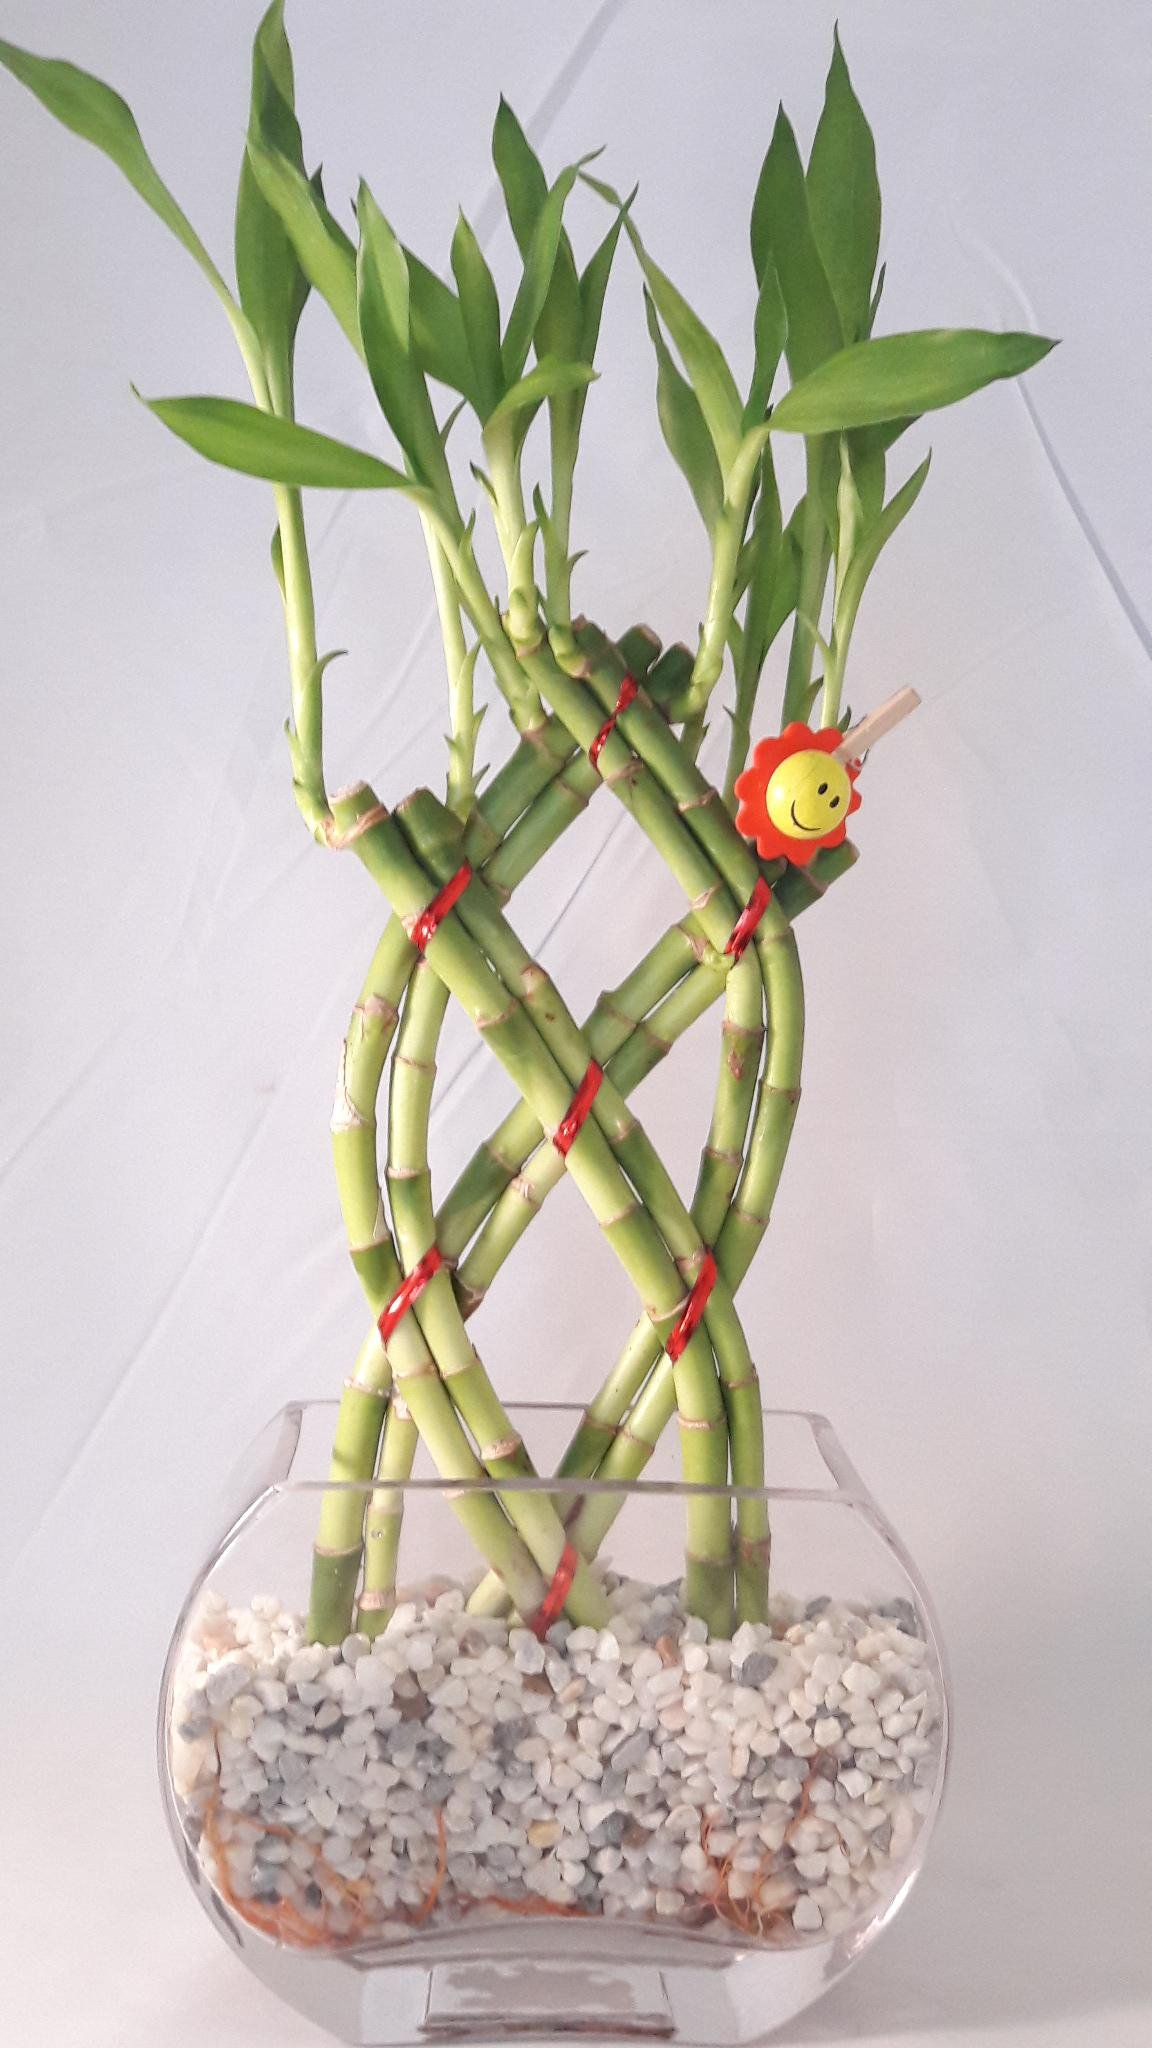 Live 8 Braided Style Lucky Bamboo Plant with glass Vase Arrangement